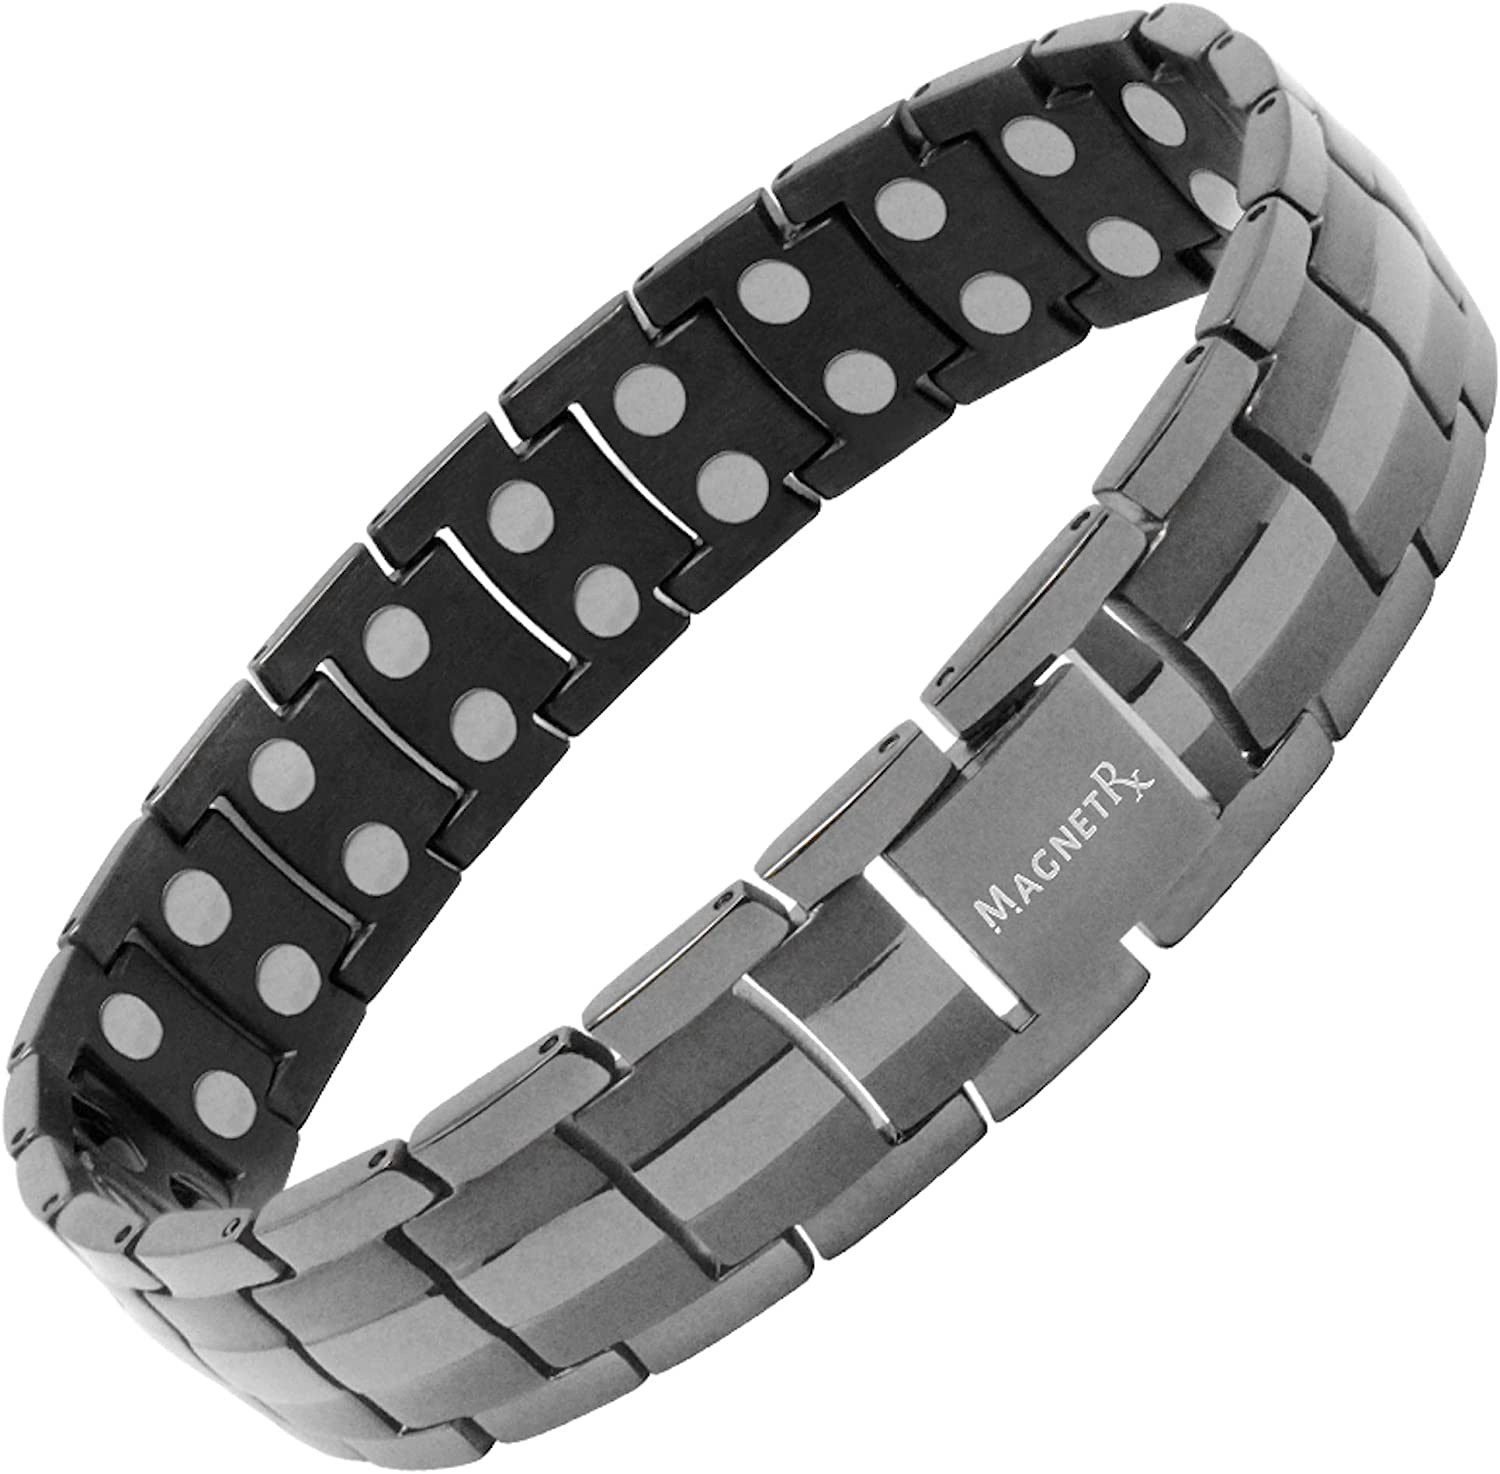 MagnetRX Ultra Strength Magnetic Therapy Bracelet | Arthritis Pain Relief and Carpal Tunnel Magnetic Bracelets for Men | Adjustable with Gift Box (Gunmetal)